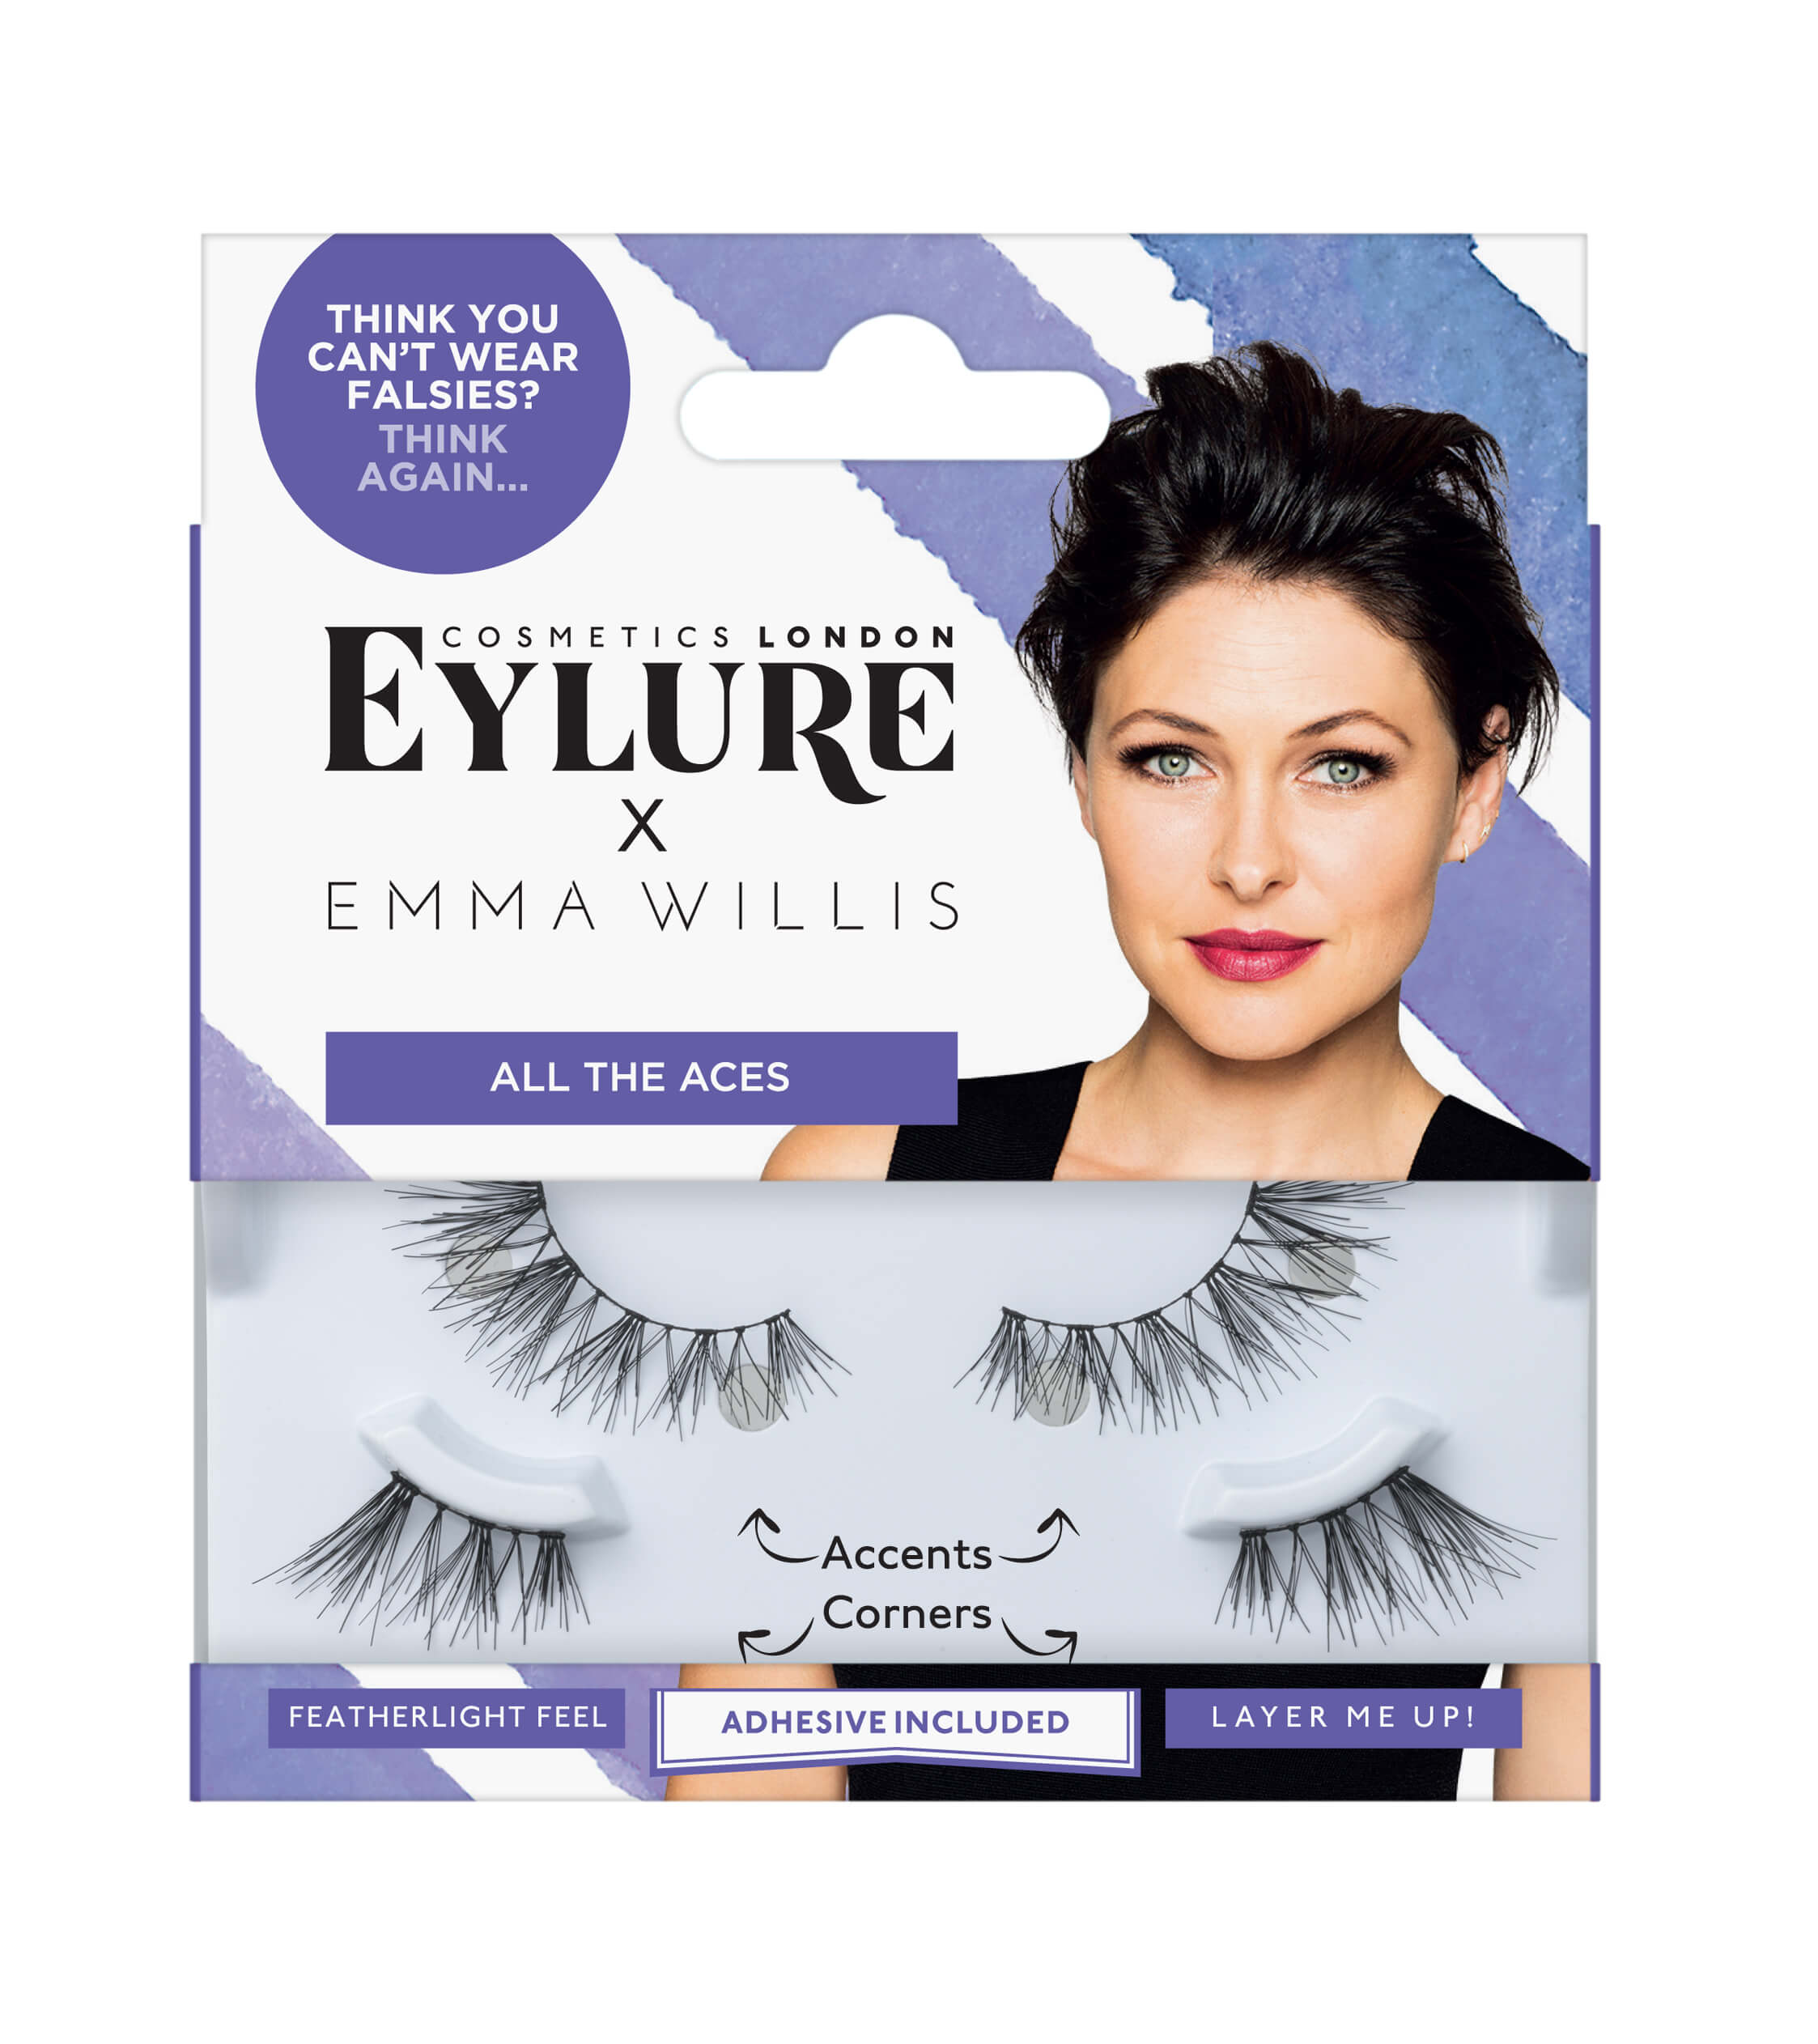 a5be1a41c7d All The Aces False Lashes | Emma Willis x Eylure | Fake Eyelashes